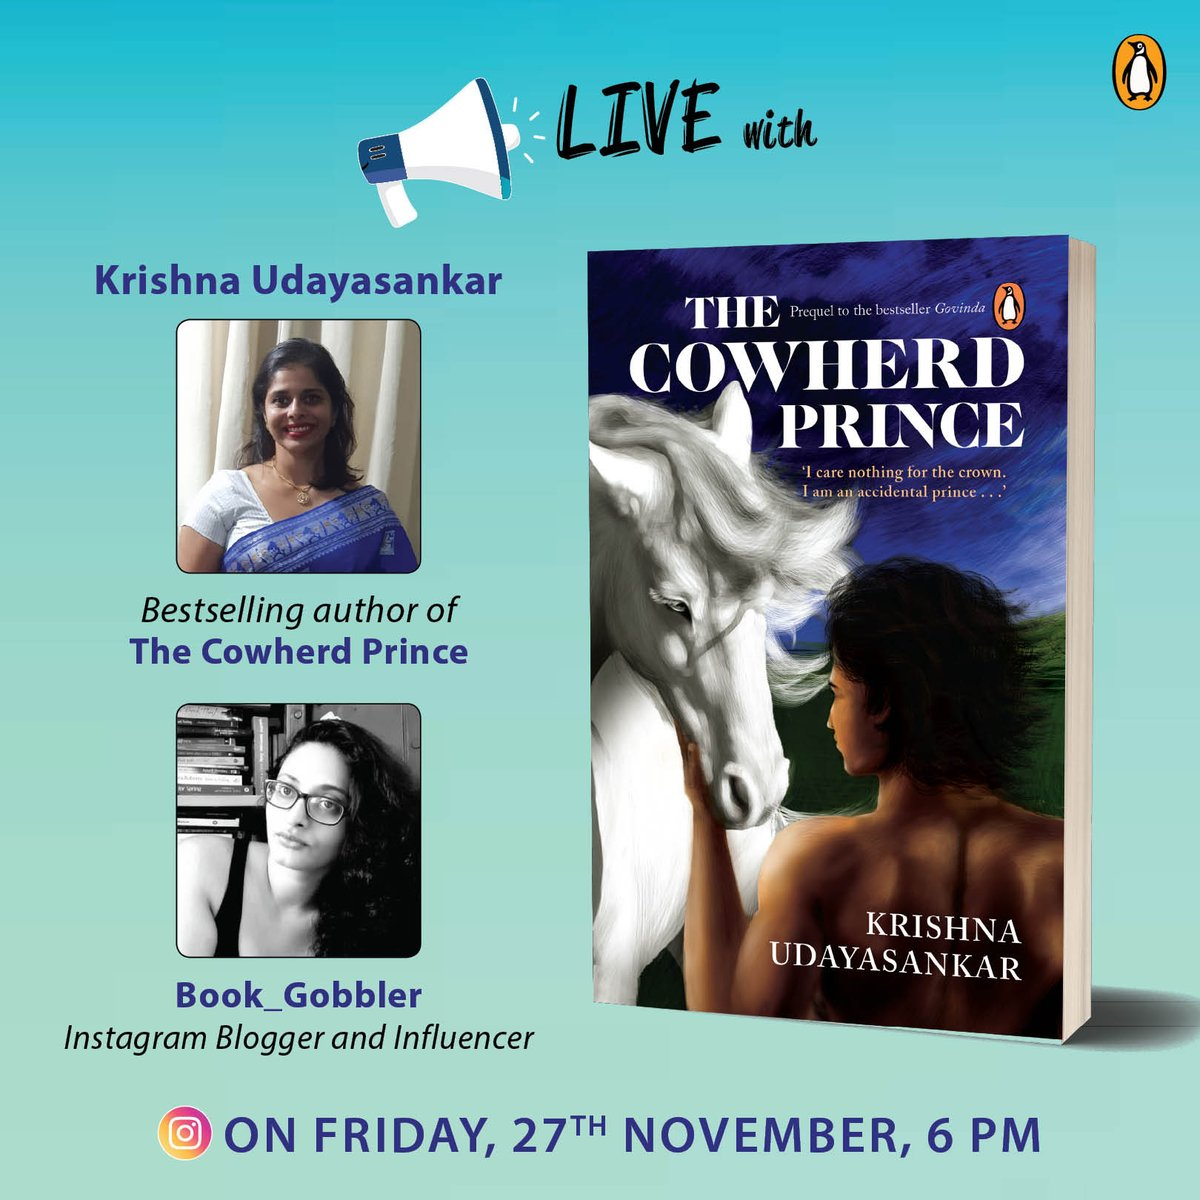 Join us for this fun Instagram LIVE session with @krisudayasankar this Friday!  #TheCowherdPrince